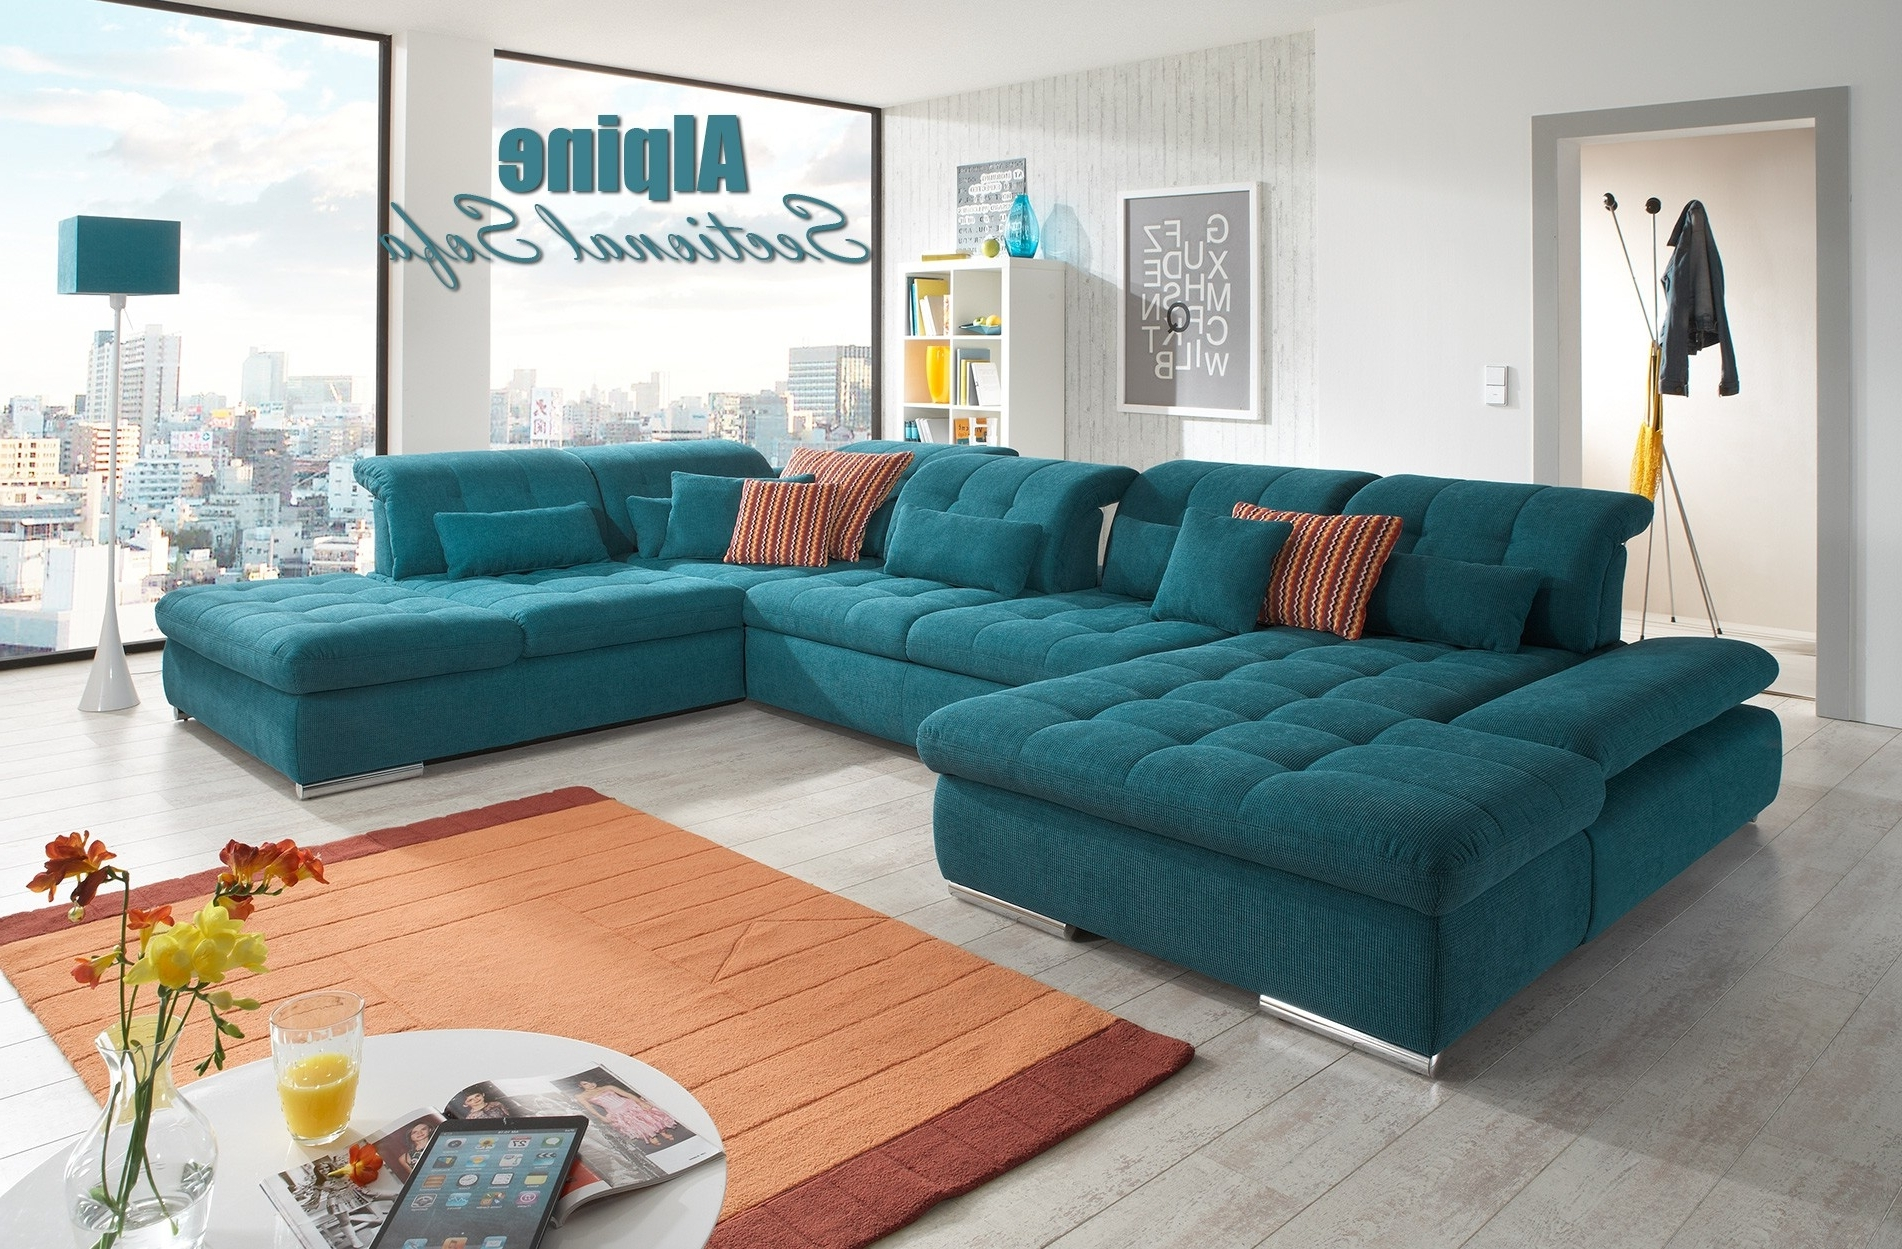 Trinidad And Tobago Sectional Sofas Throughout Most Recently Released Alpine Sectional Sofa In Green Fabric (View 9 of 15)